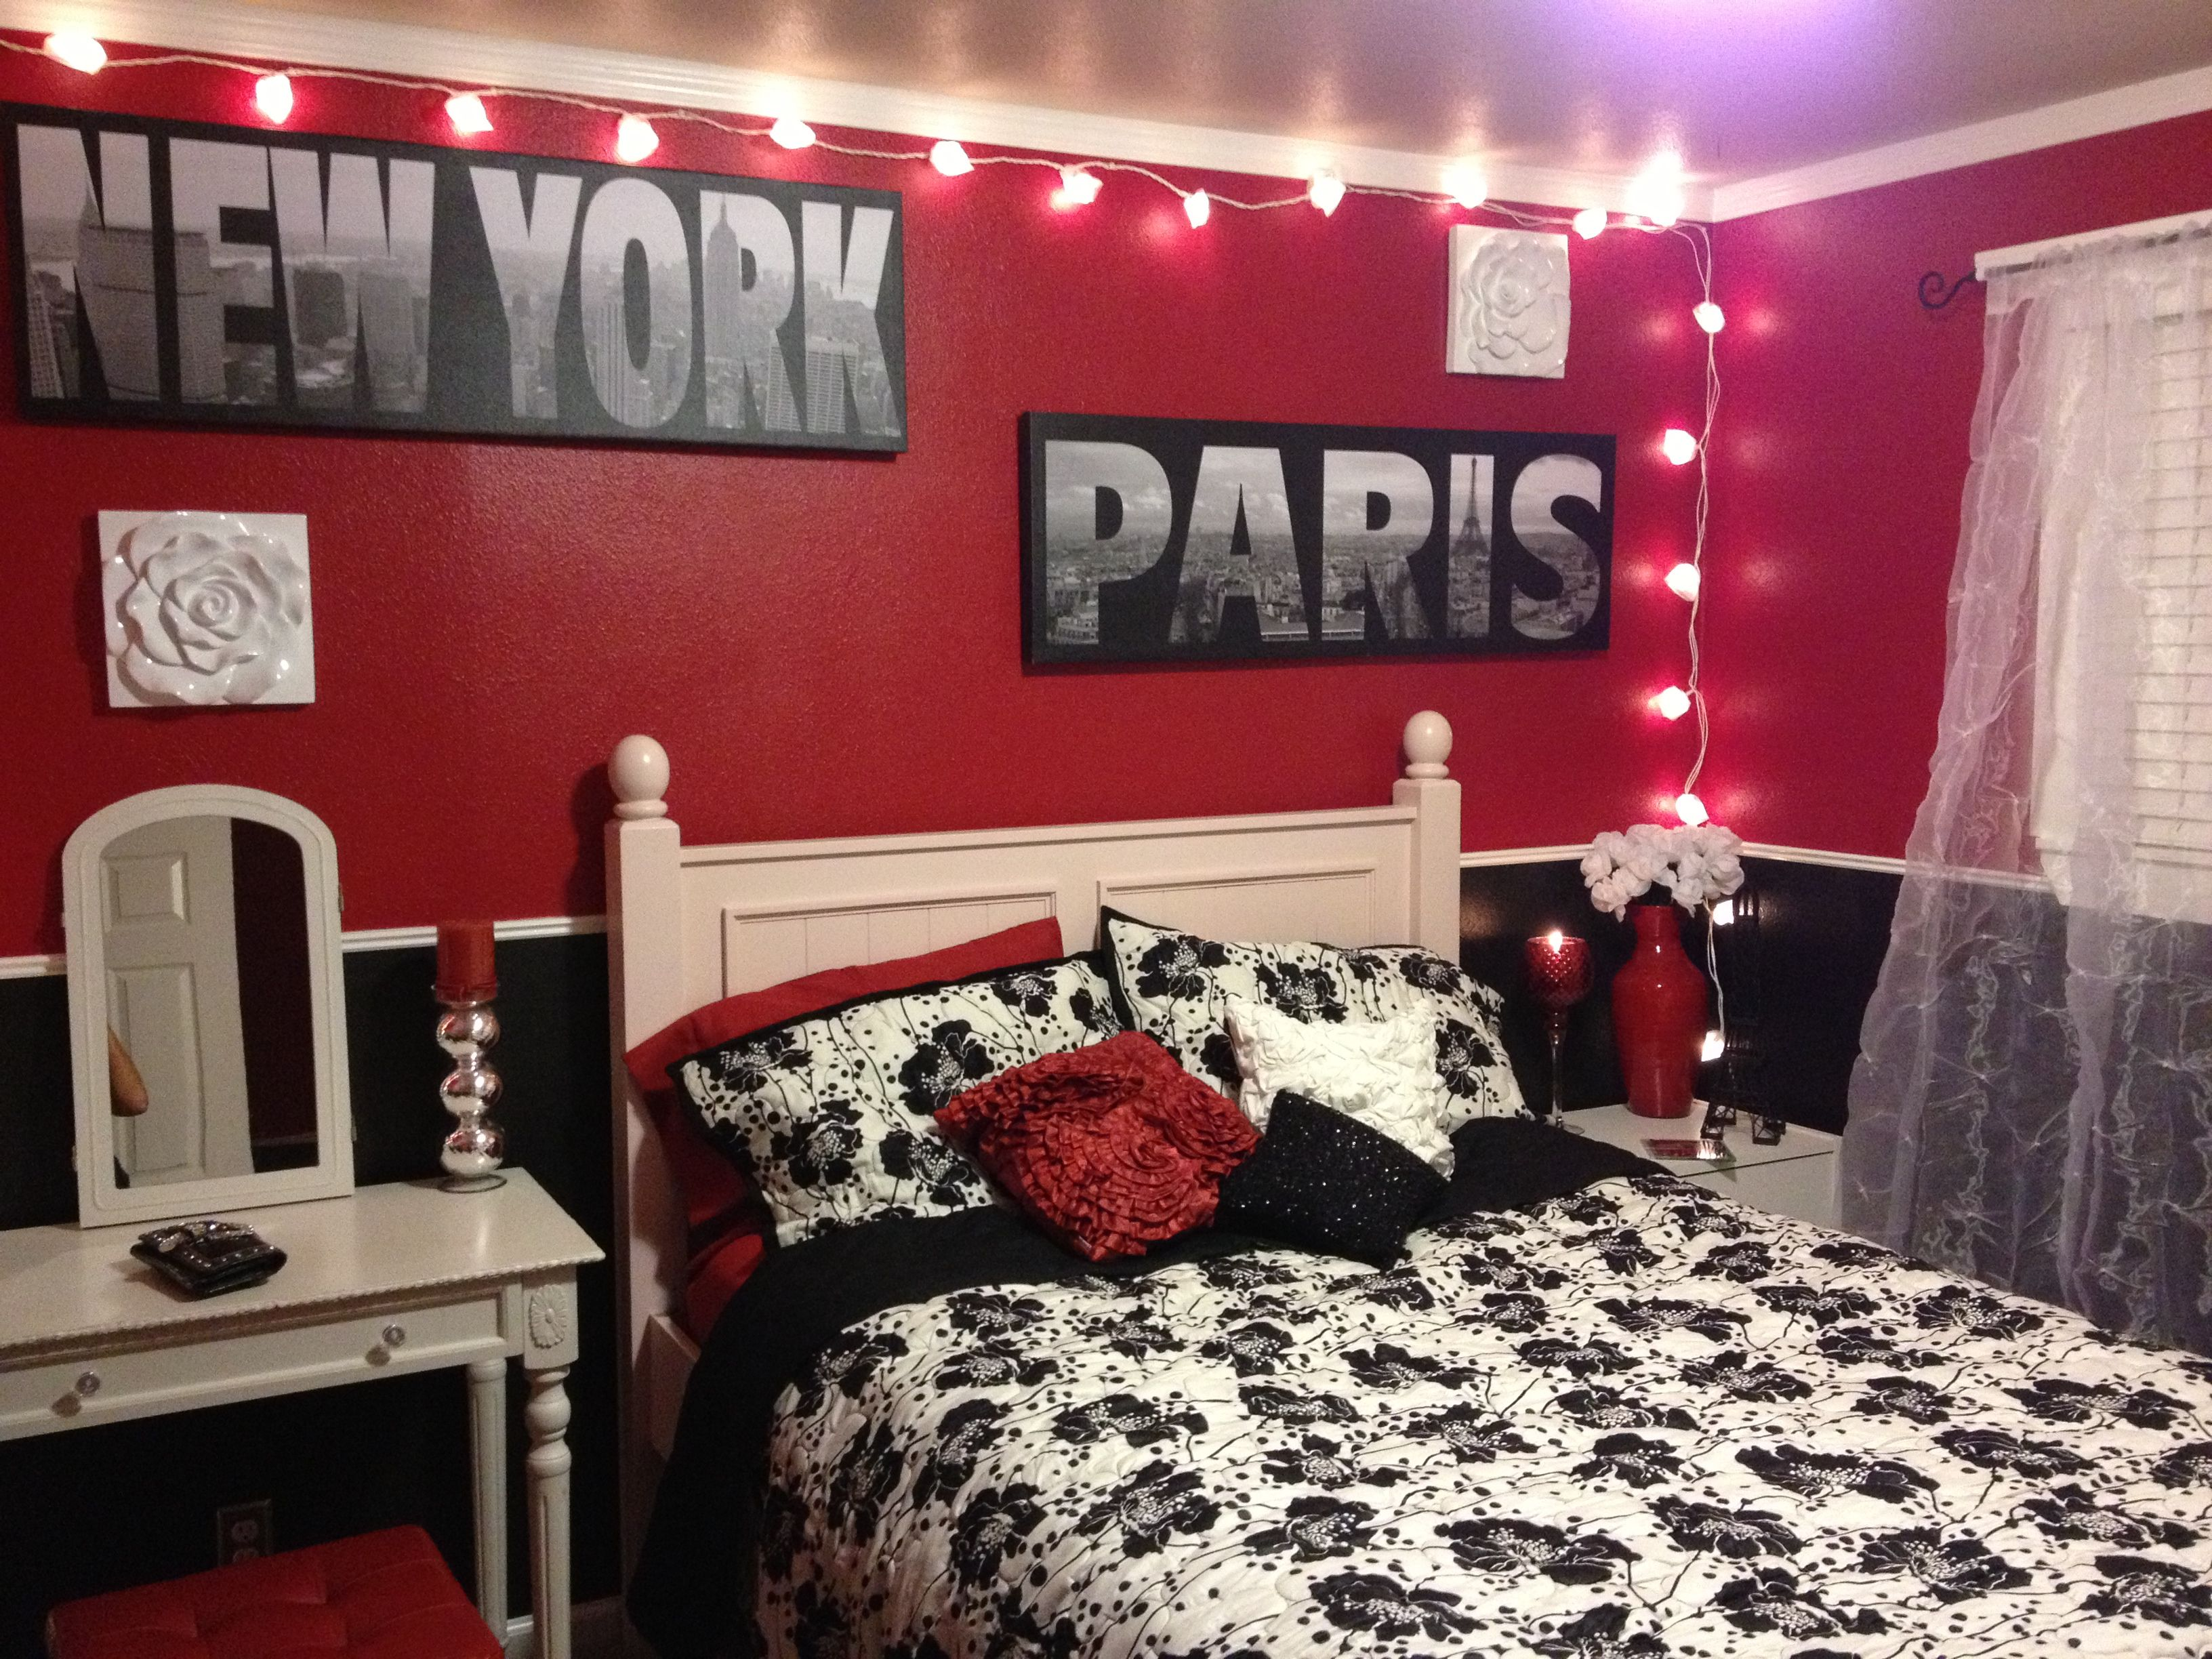 Merveilleux London, Paris, New York Bedroom · Girl Bedroom DecorationsTheme ...